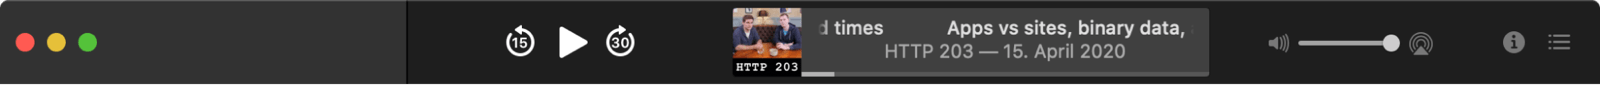 The Podcasts app's customized split customized title bar.